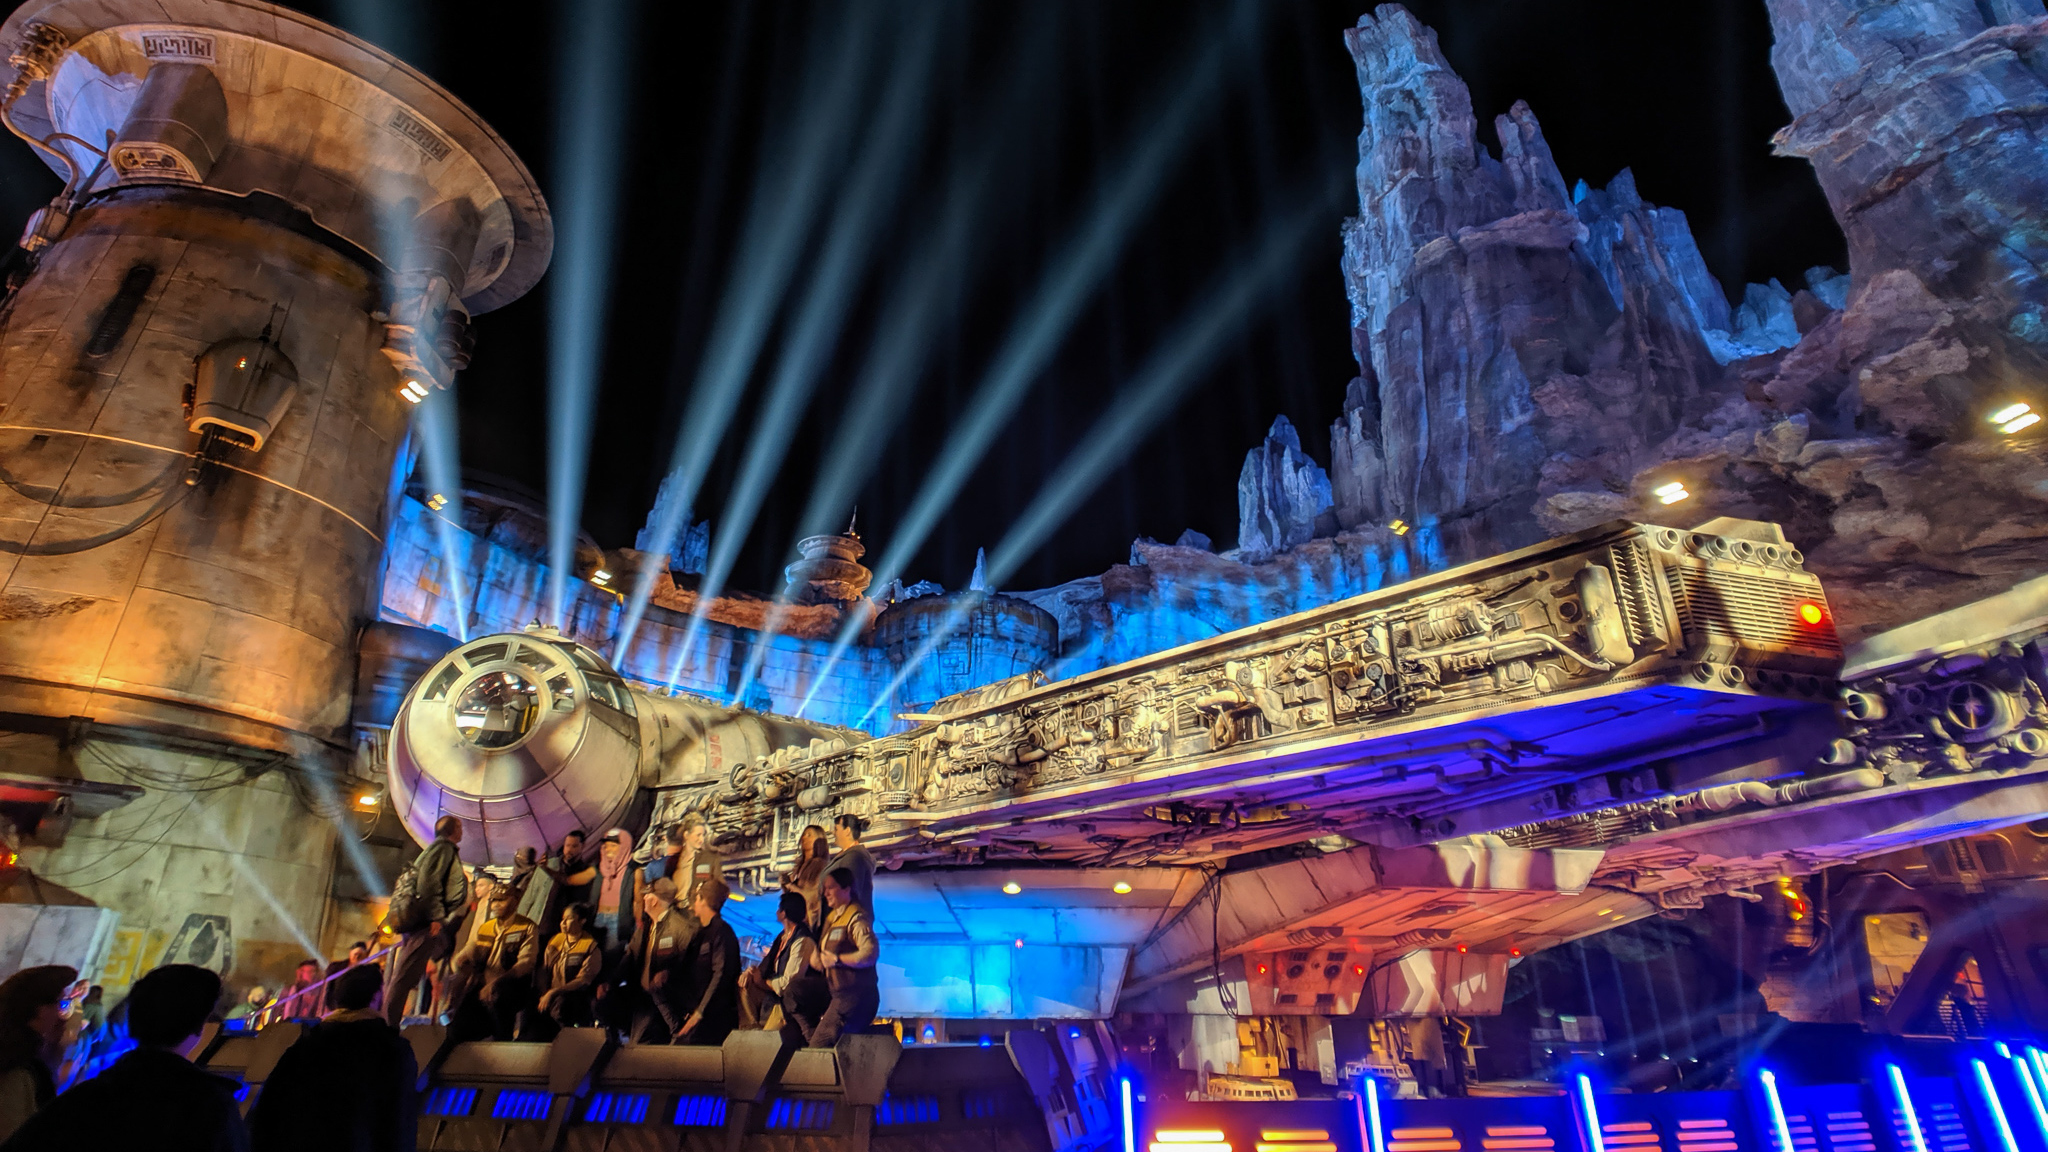 The 6 things you need to see and do at Disneyland's Star Wars: Galaxy's Edge